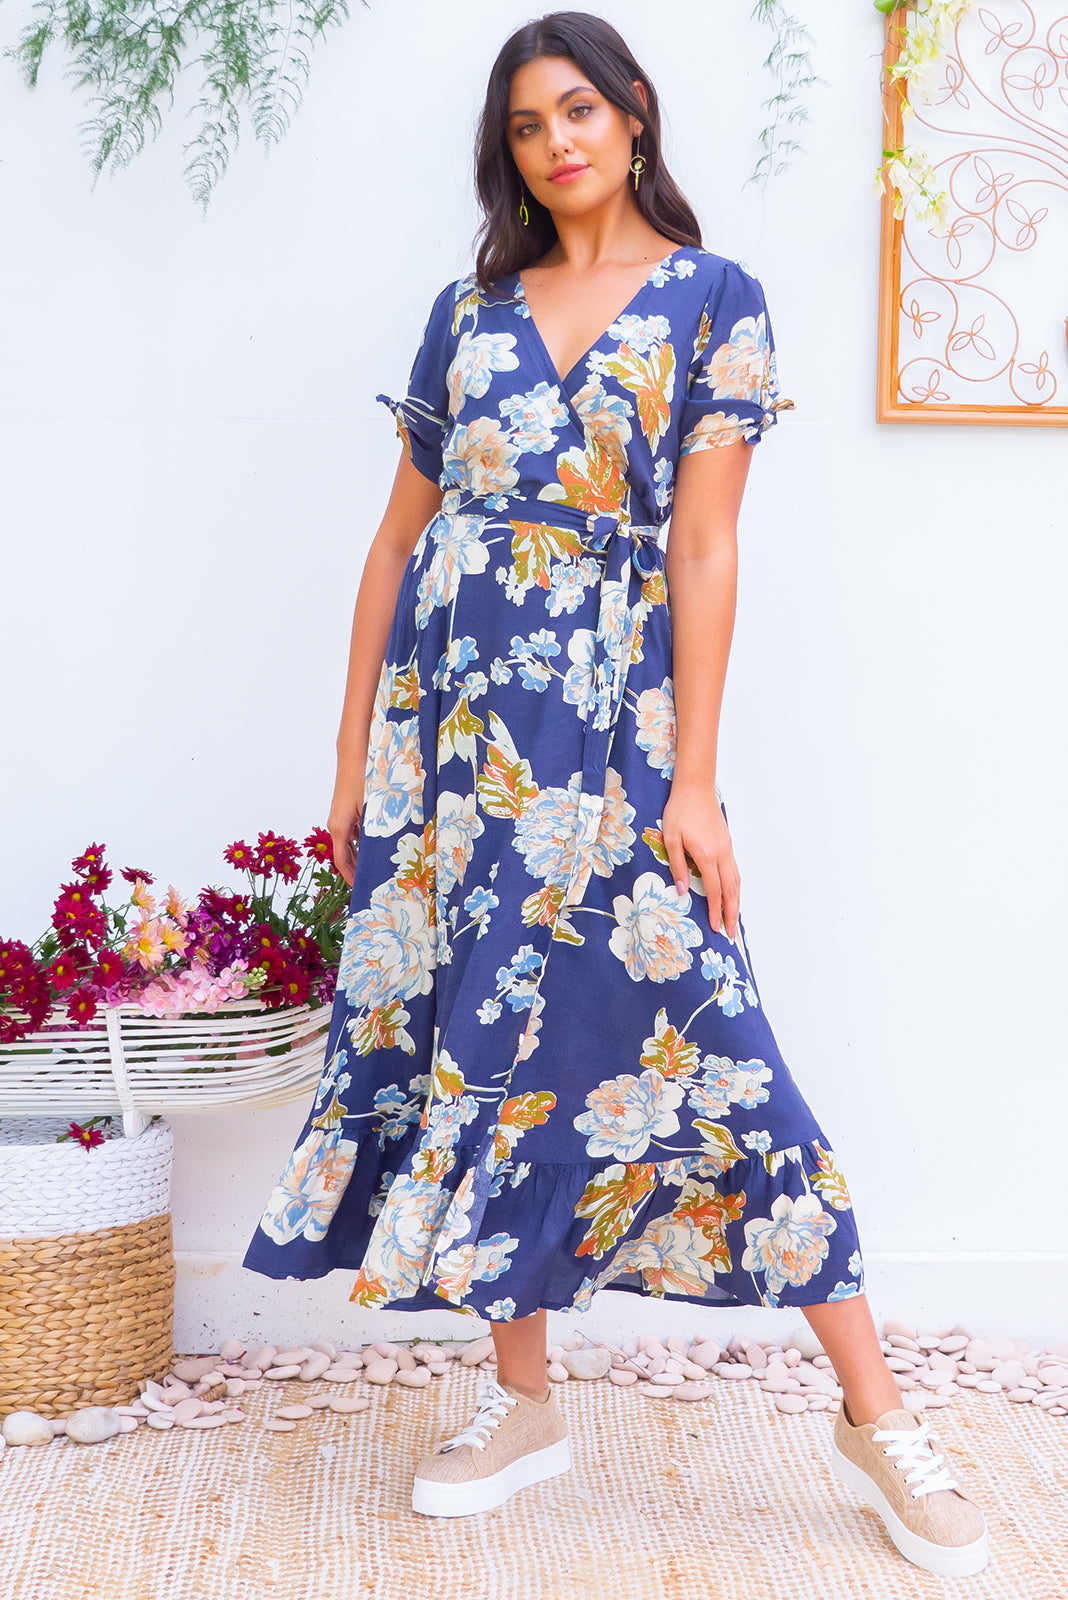 Francoise Blue Vintage Maxi Wrap dress with side split flutter sleeves, a wrap around adjustable waist, v neckline and frill hem in a soft dusky blue based watercolour floral print in autumn tones